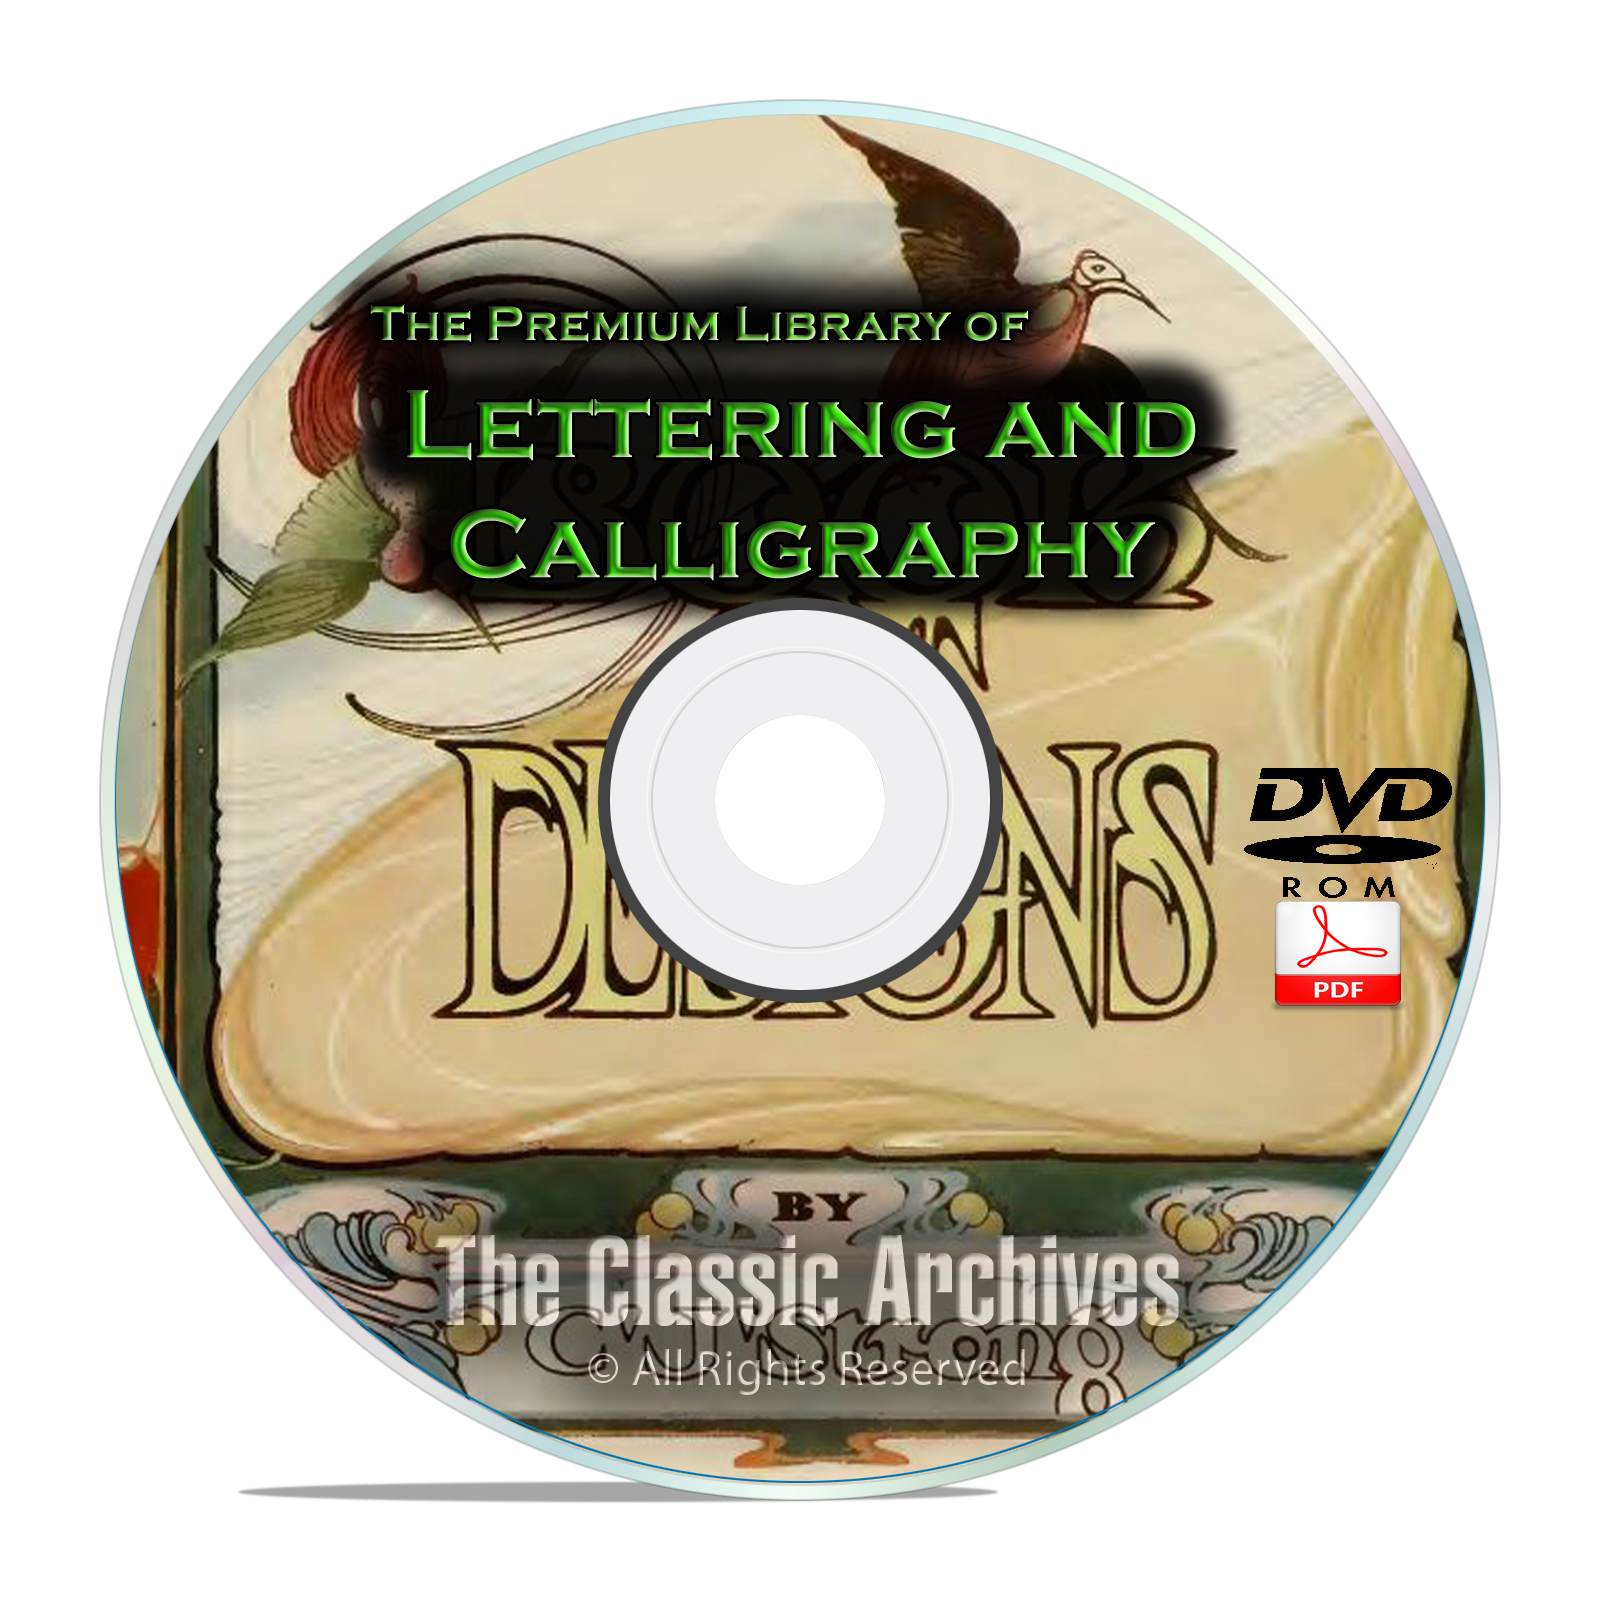 Lettering Calligraphy Library, Monograms Ciphers Sign Writing 164 Books DVD - Click Image to Close